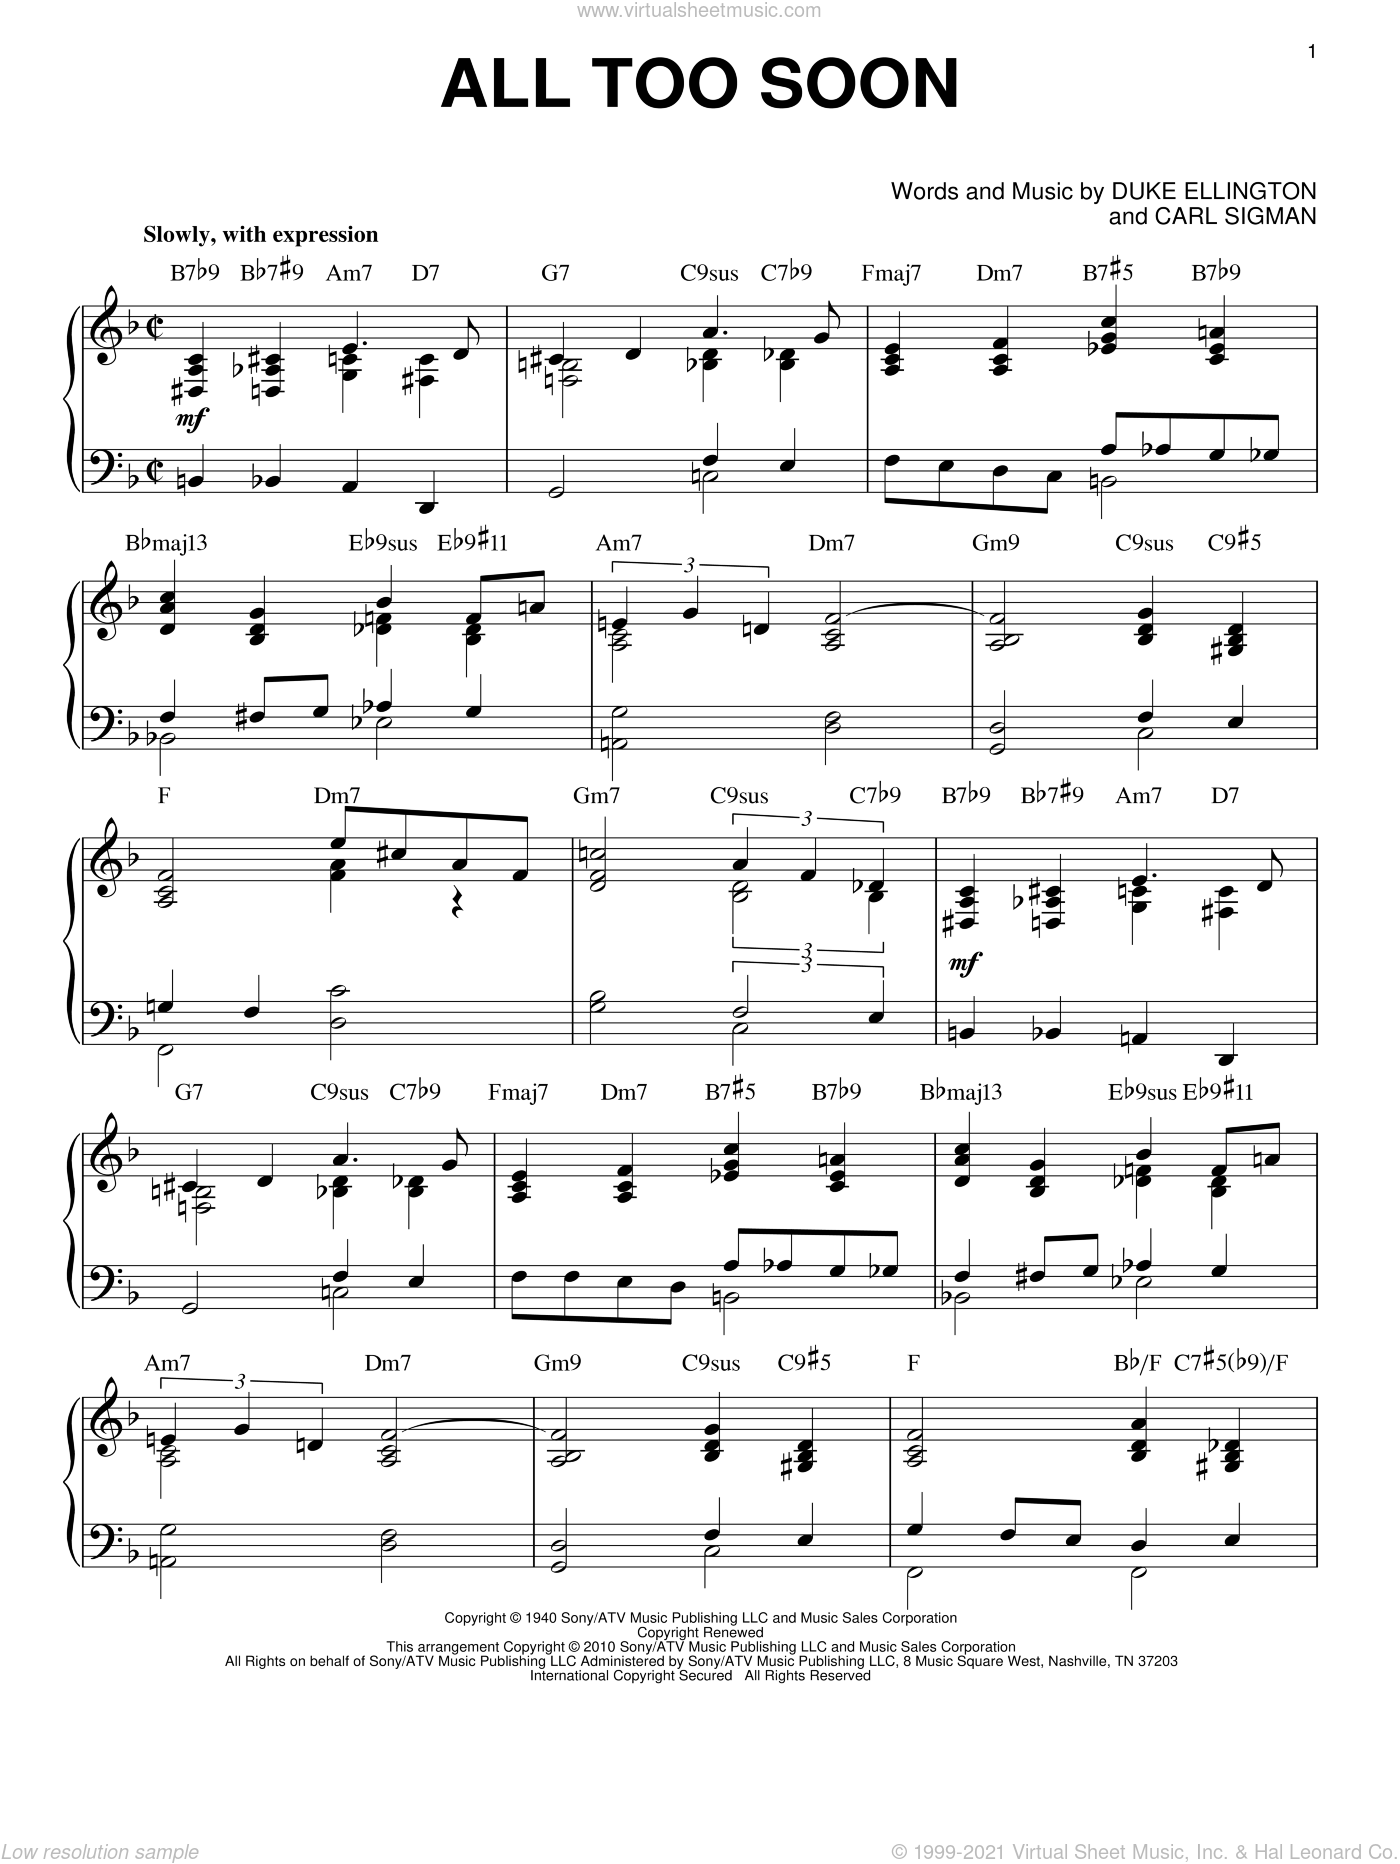 All Too Soon sheet music for piano solo by Duke Ellington and Carl Sigman, intermediate skill level